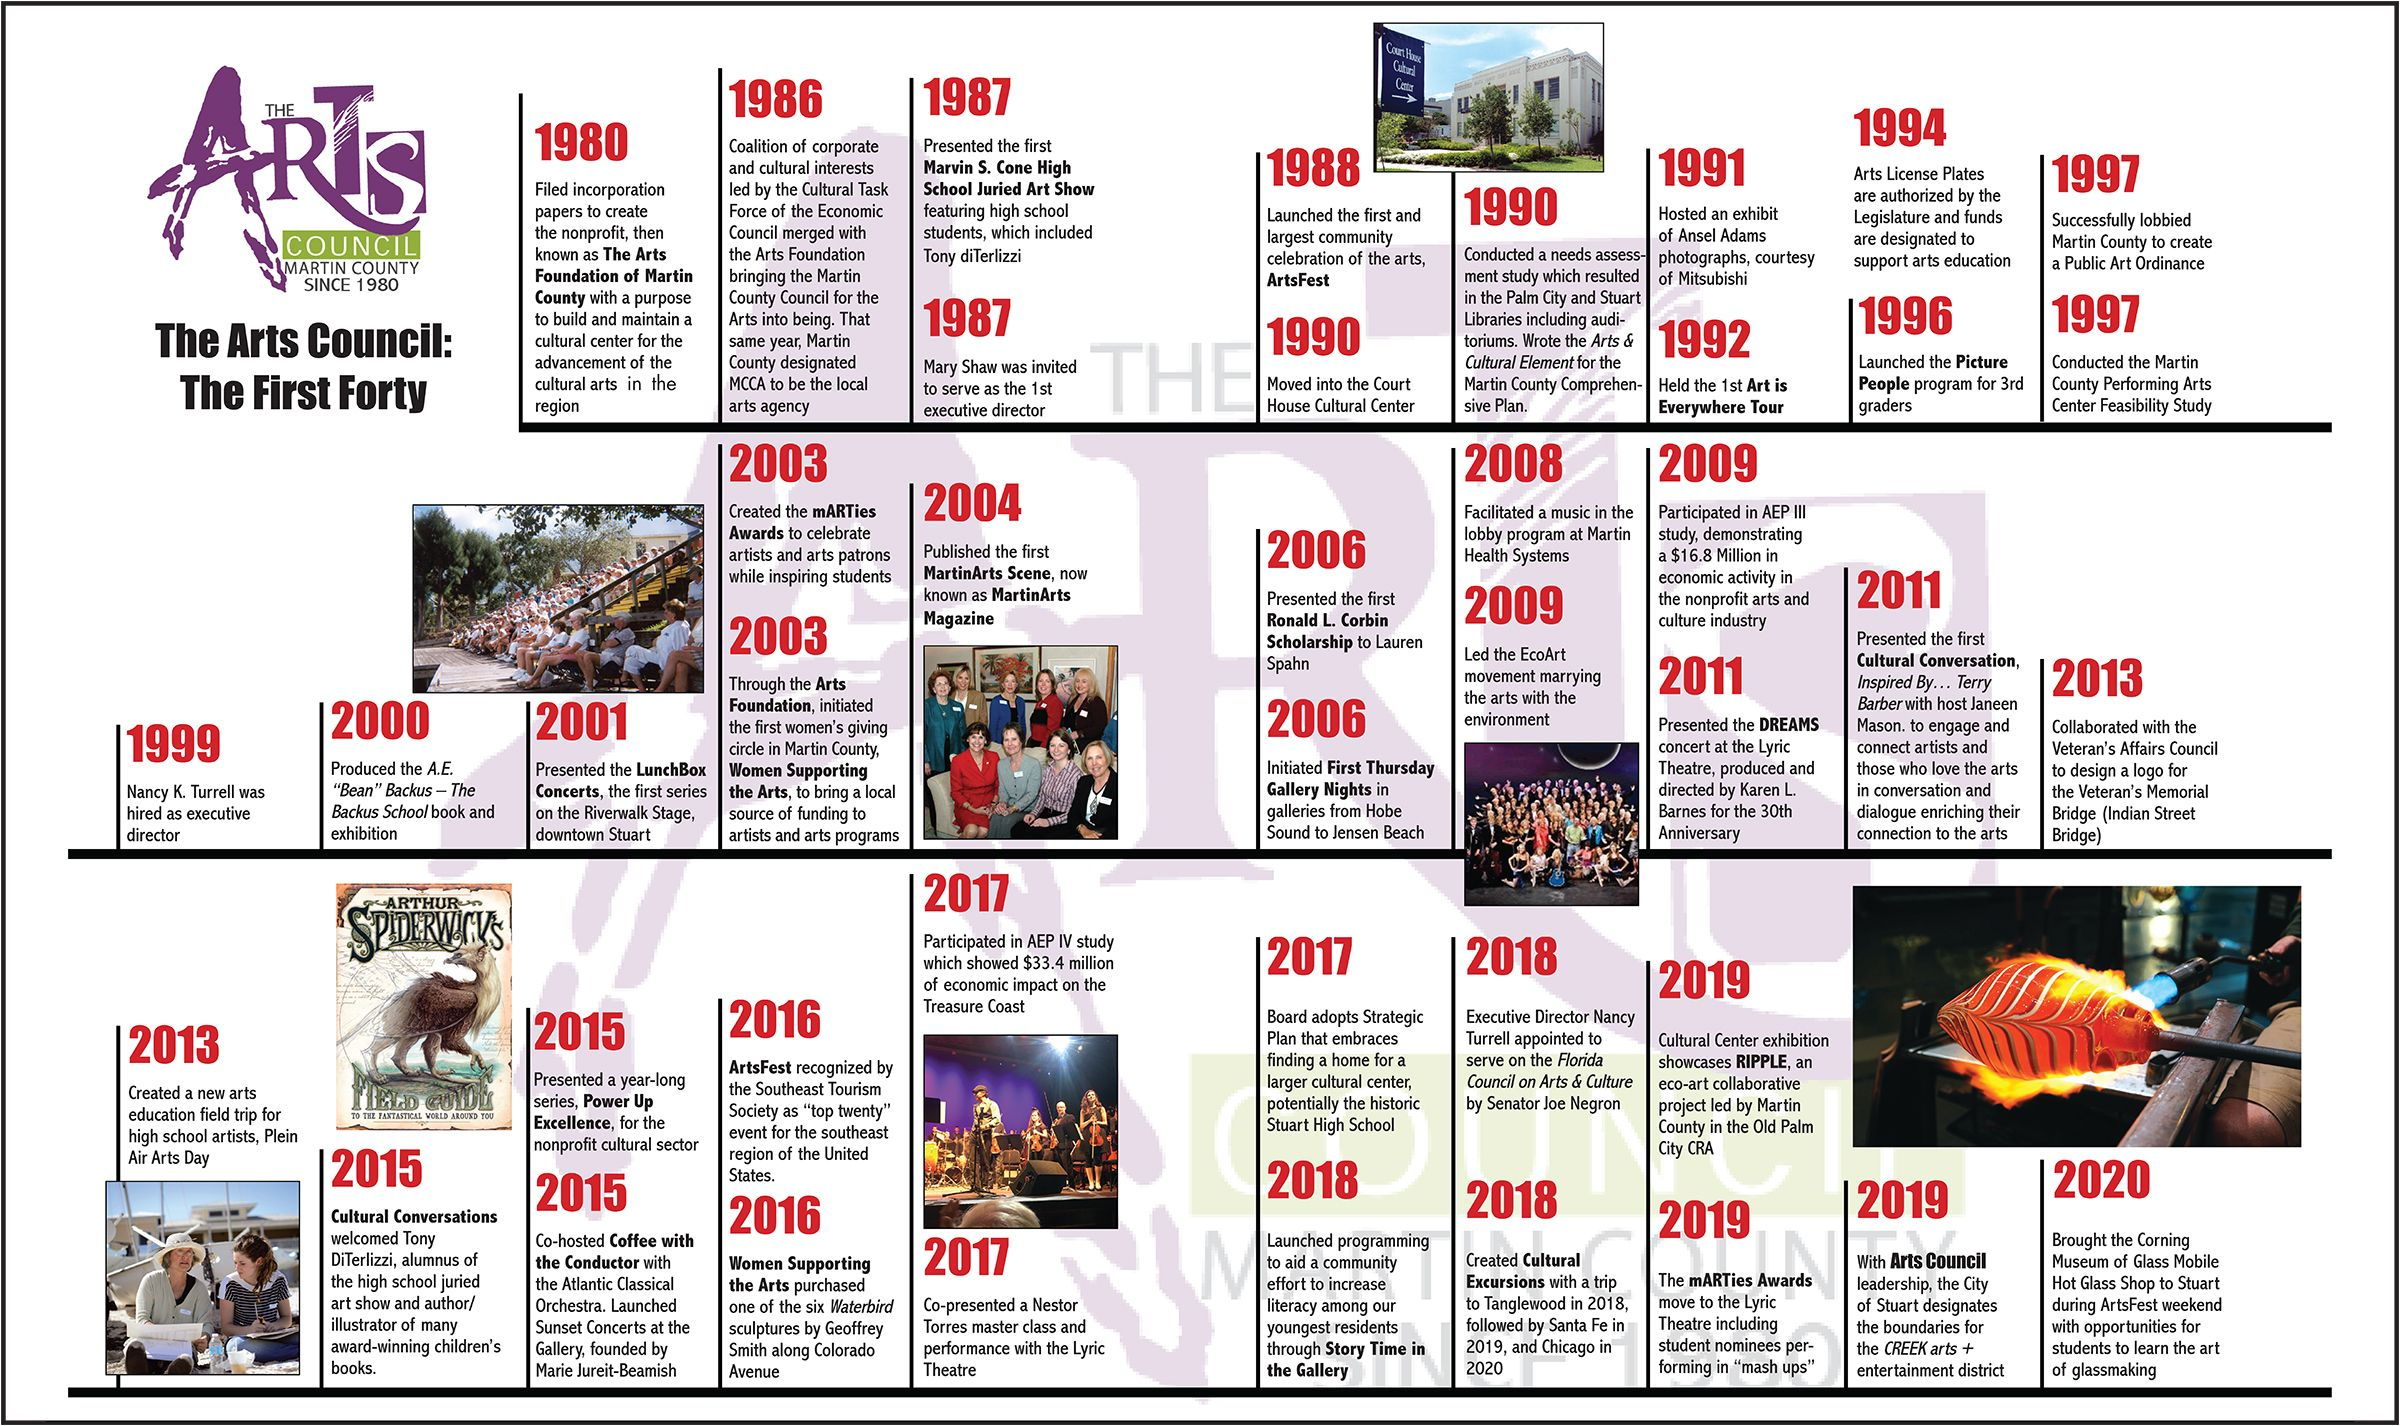 History timeline of Arts Council milestones and accomplishments over the last 40 years.